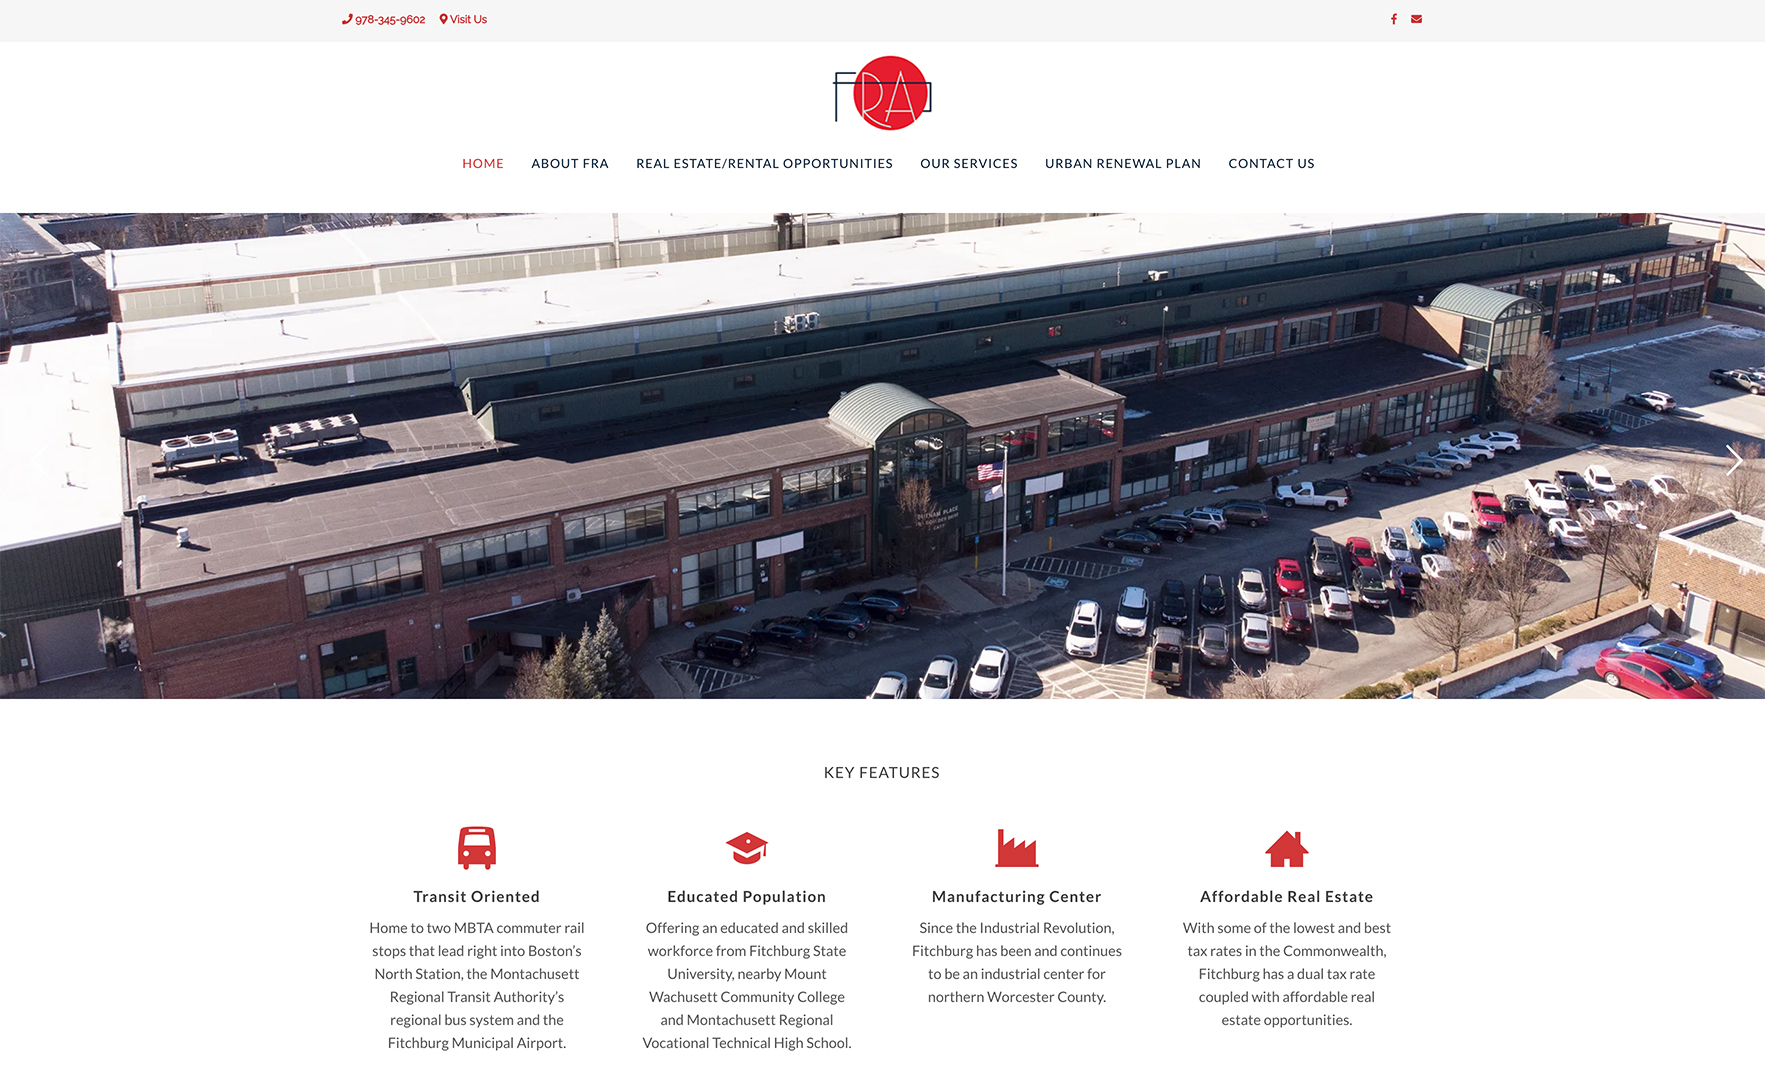 Website design for Fitchburg Redevelopment Authority. Designed by Sitka Creations.